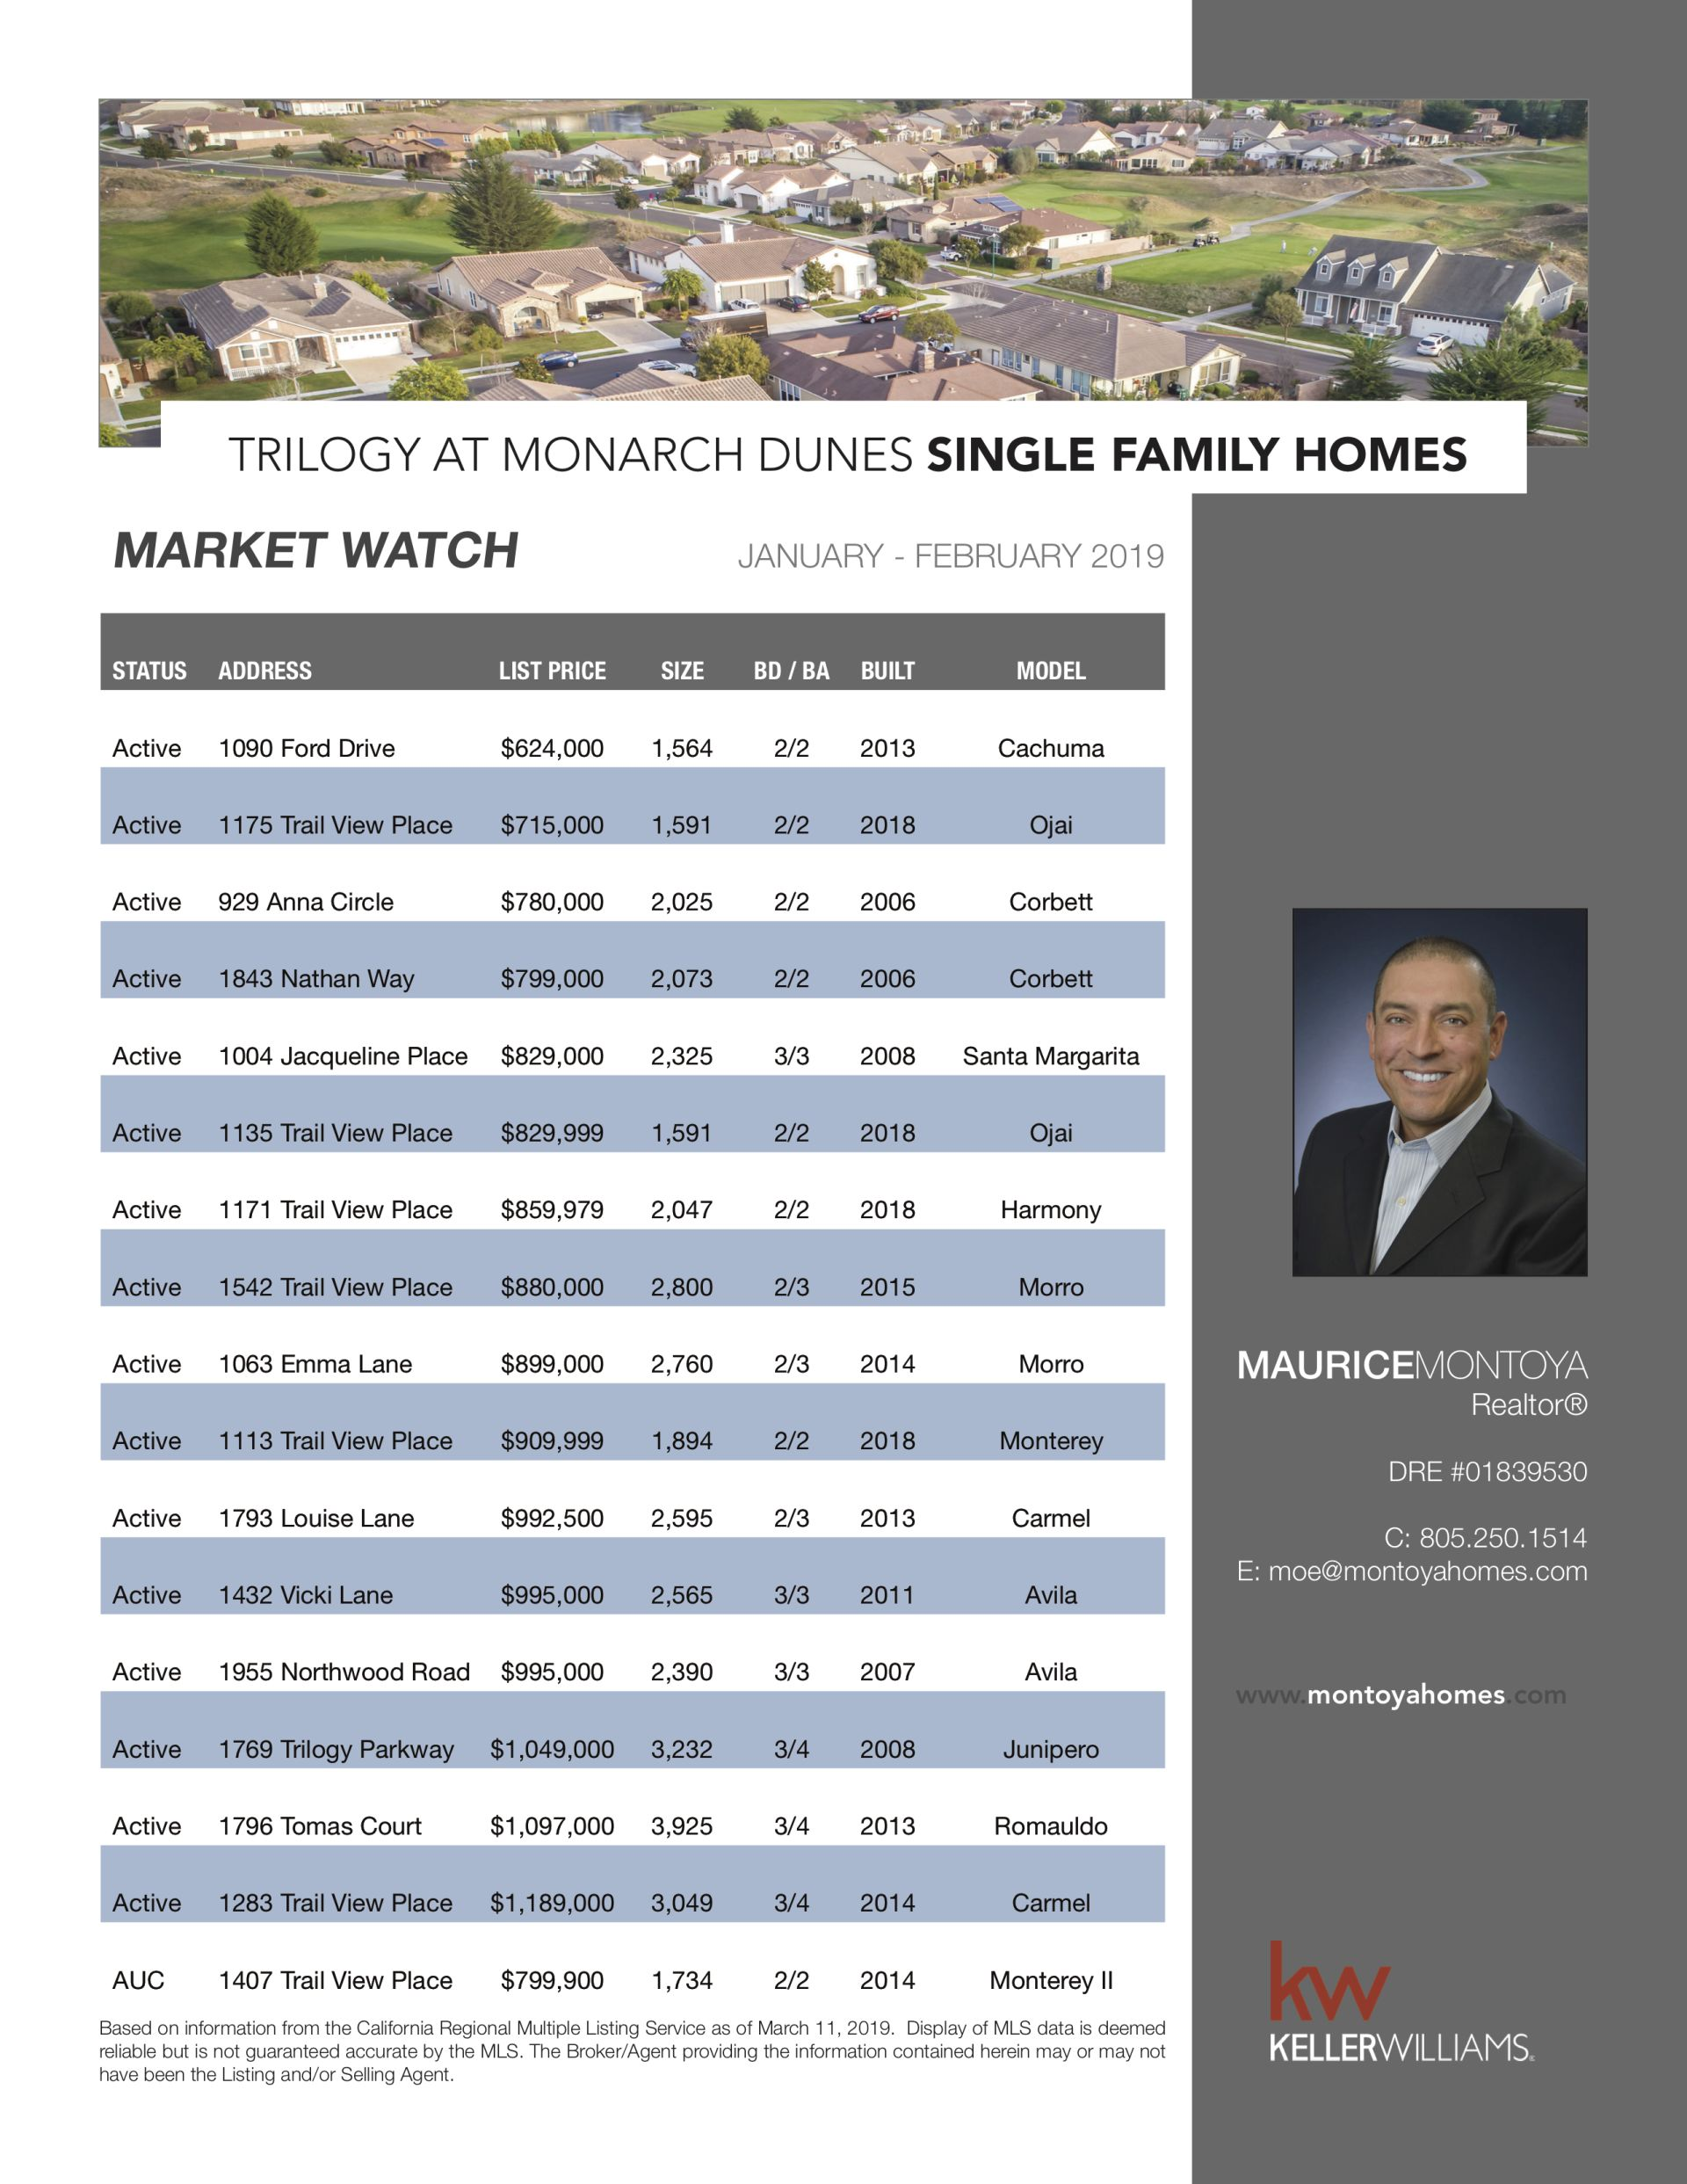 Trilogy at Monarch Dunes: Market Watch March 2019